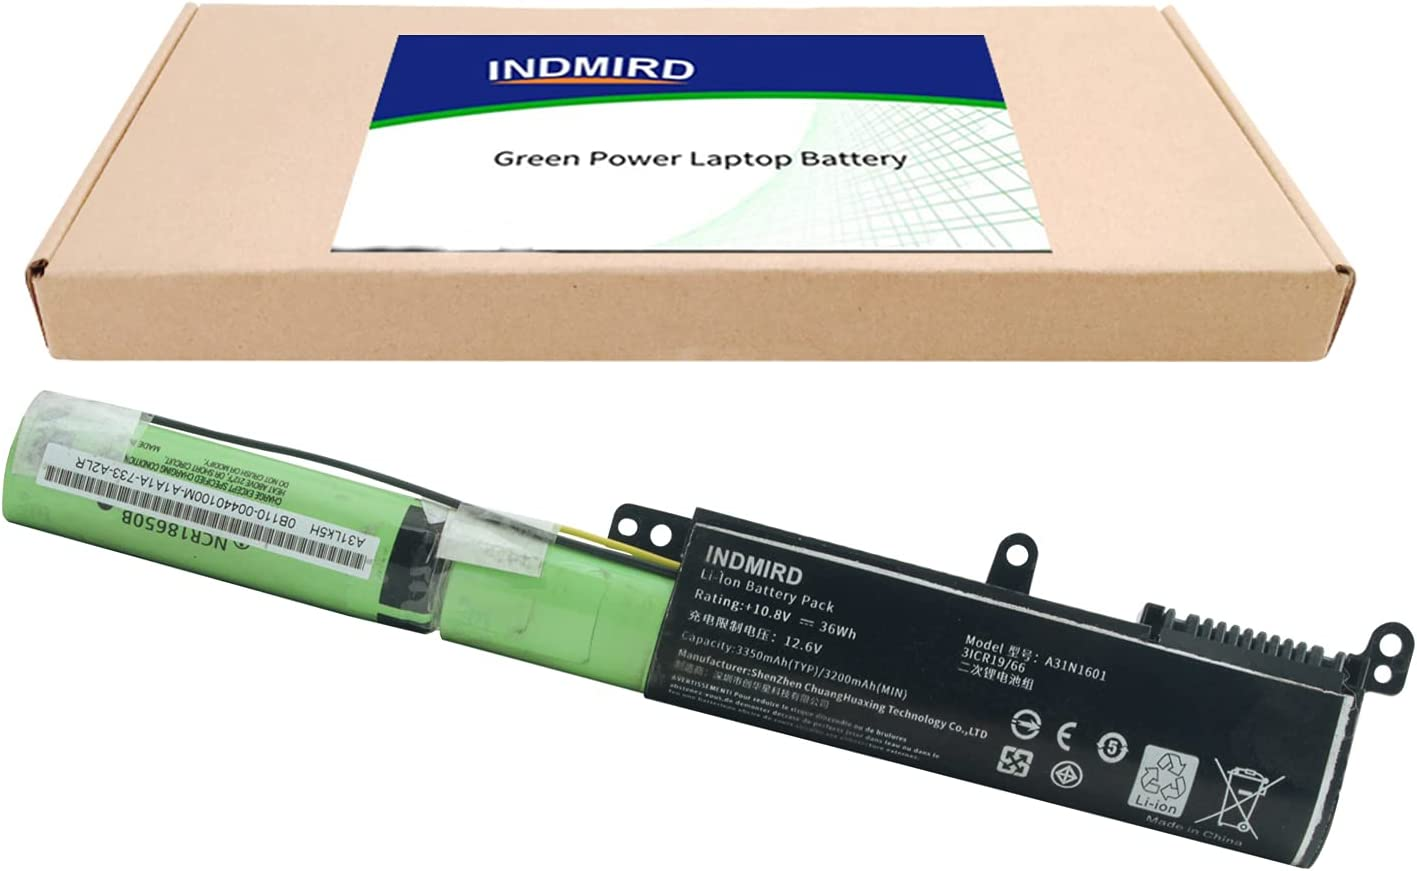 Indmird A31N1601 Memphis Mall Laptop Battery for Large-scale sale X541 ASUS X541S Vivobook X54